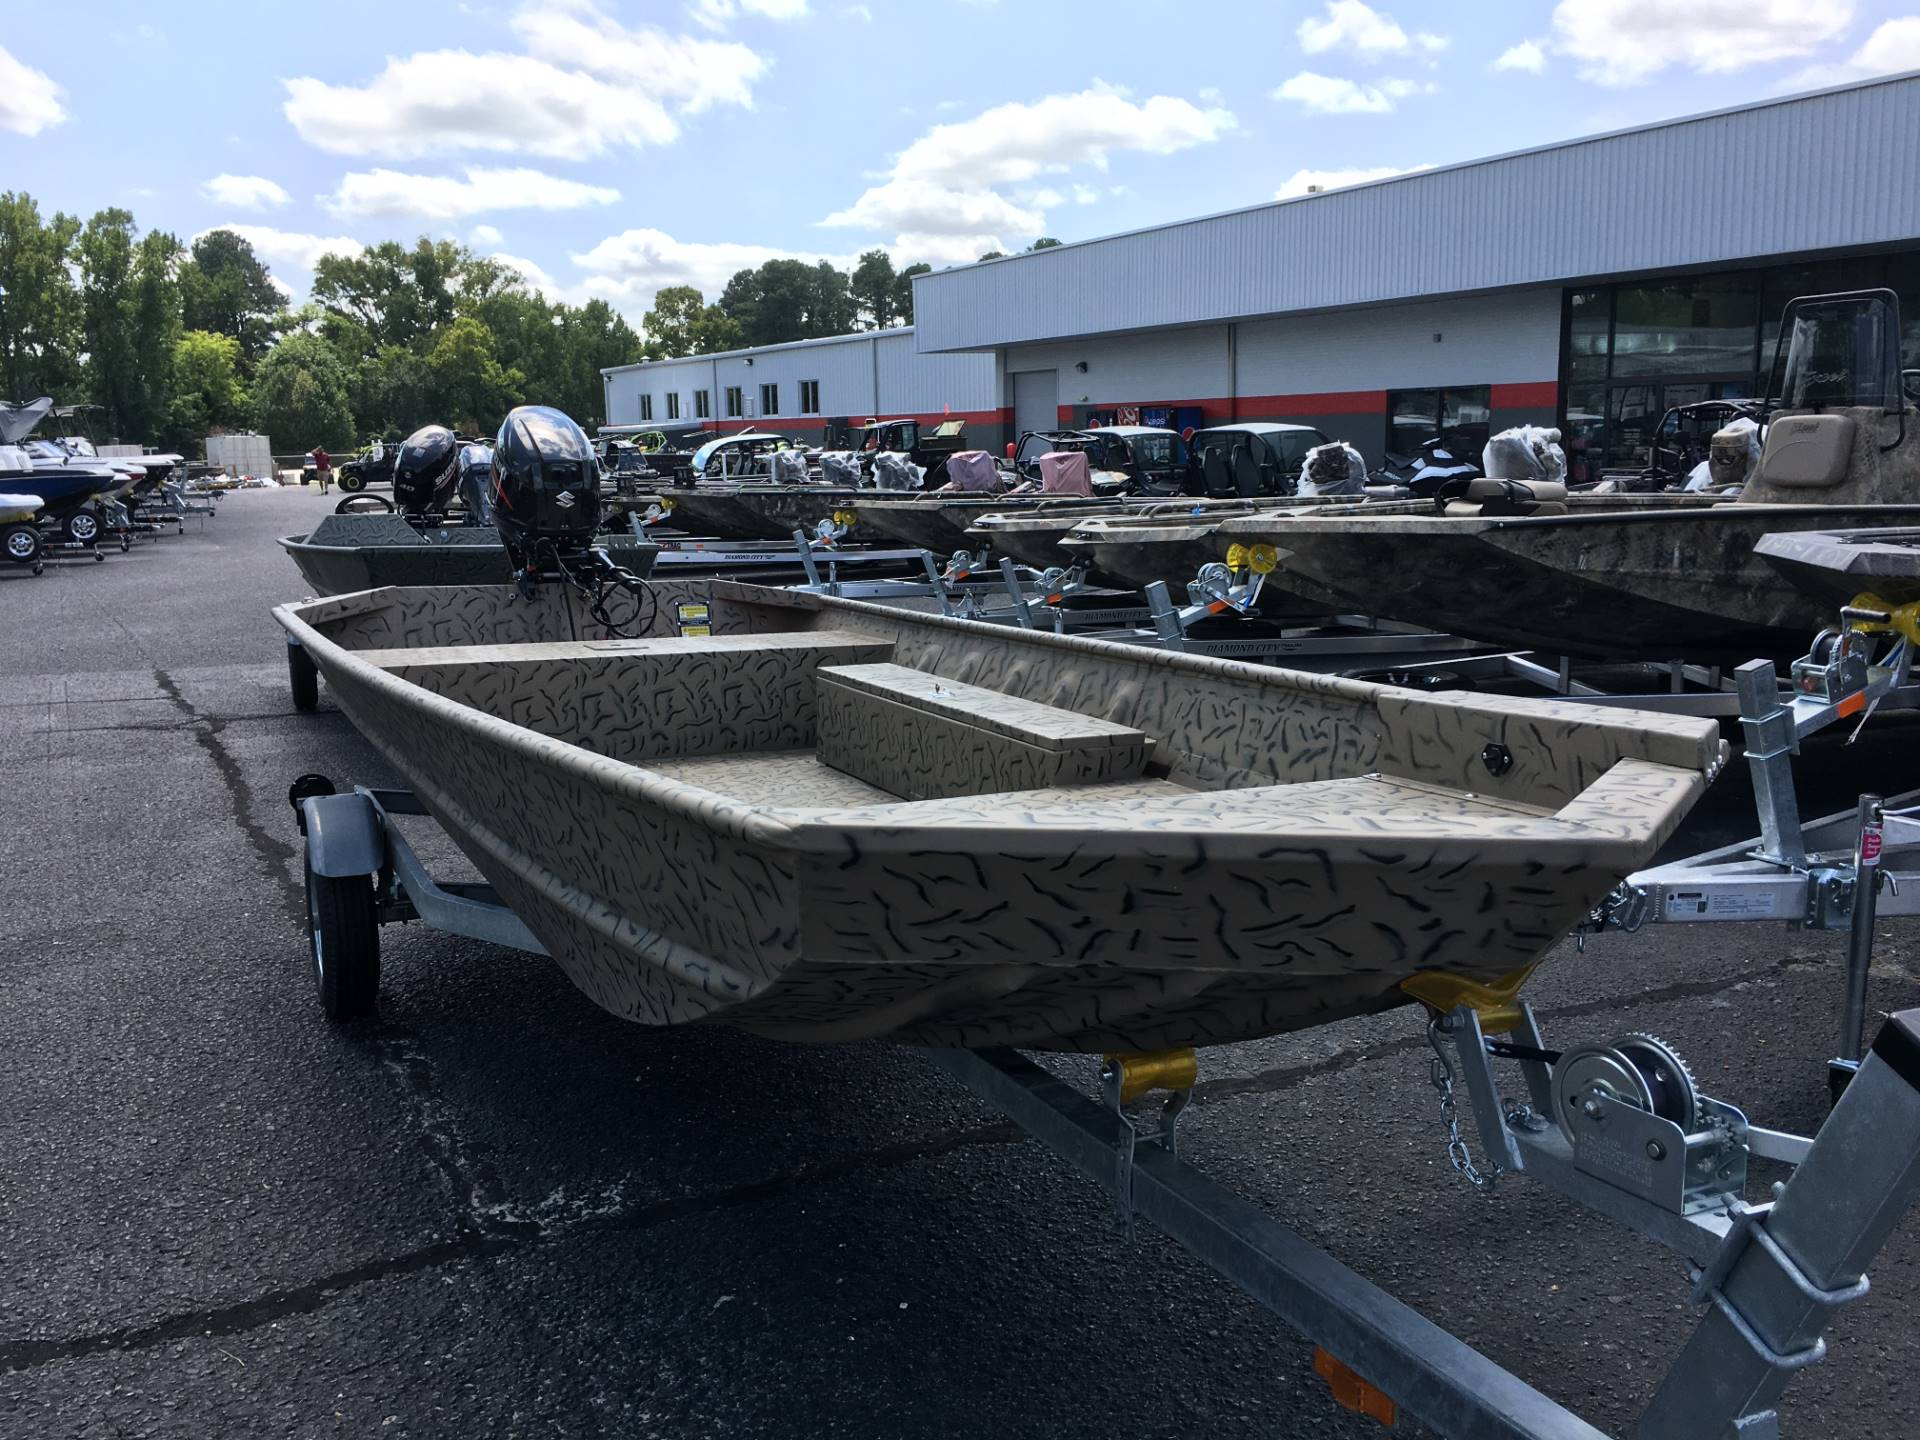 Duck Boats For Sale >> Weldcraft 1652 Muv Duck Boats For Sale In United States Boats Com